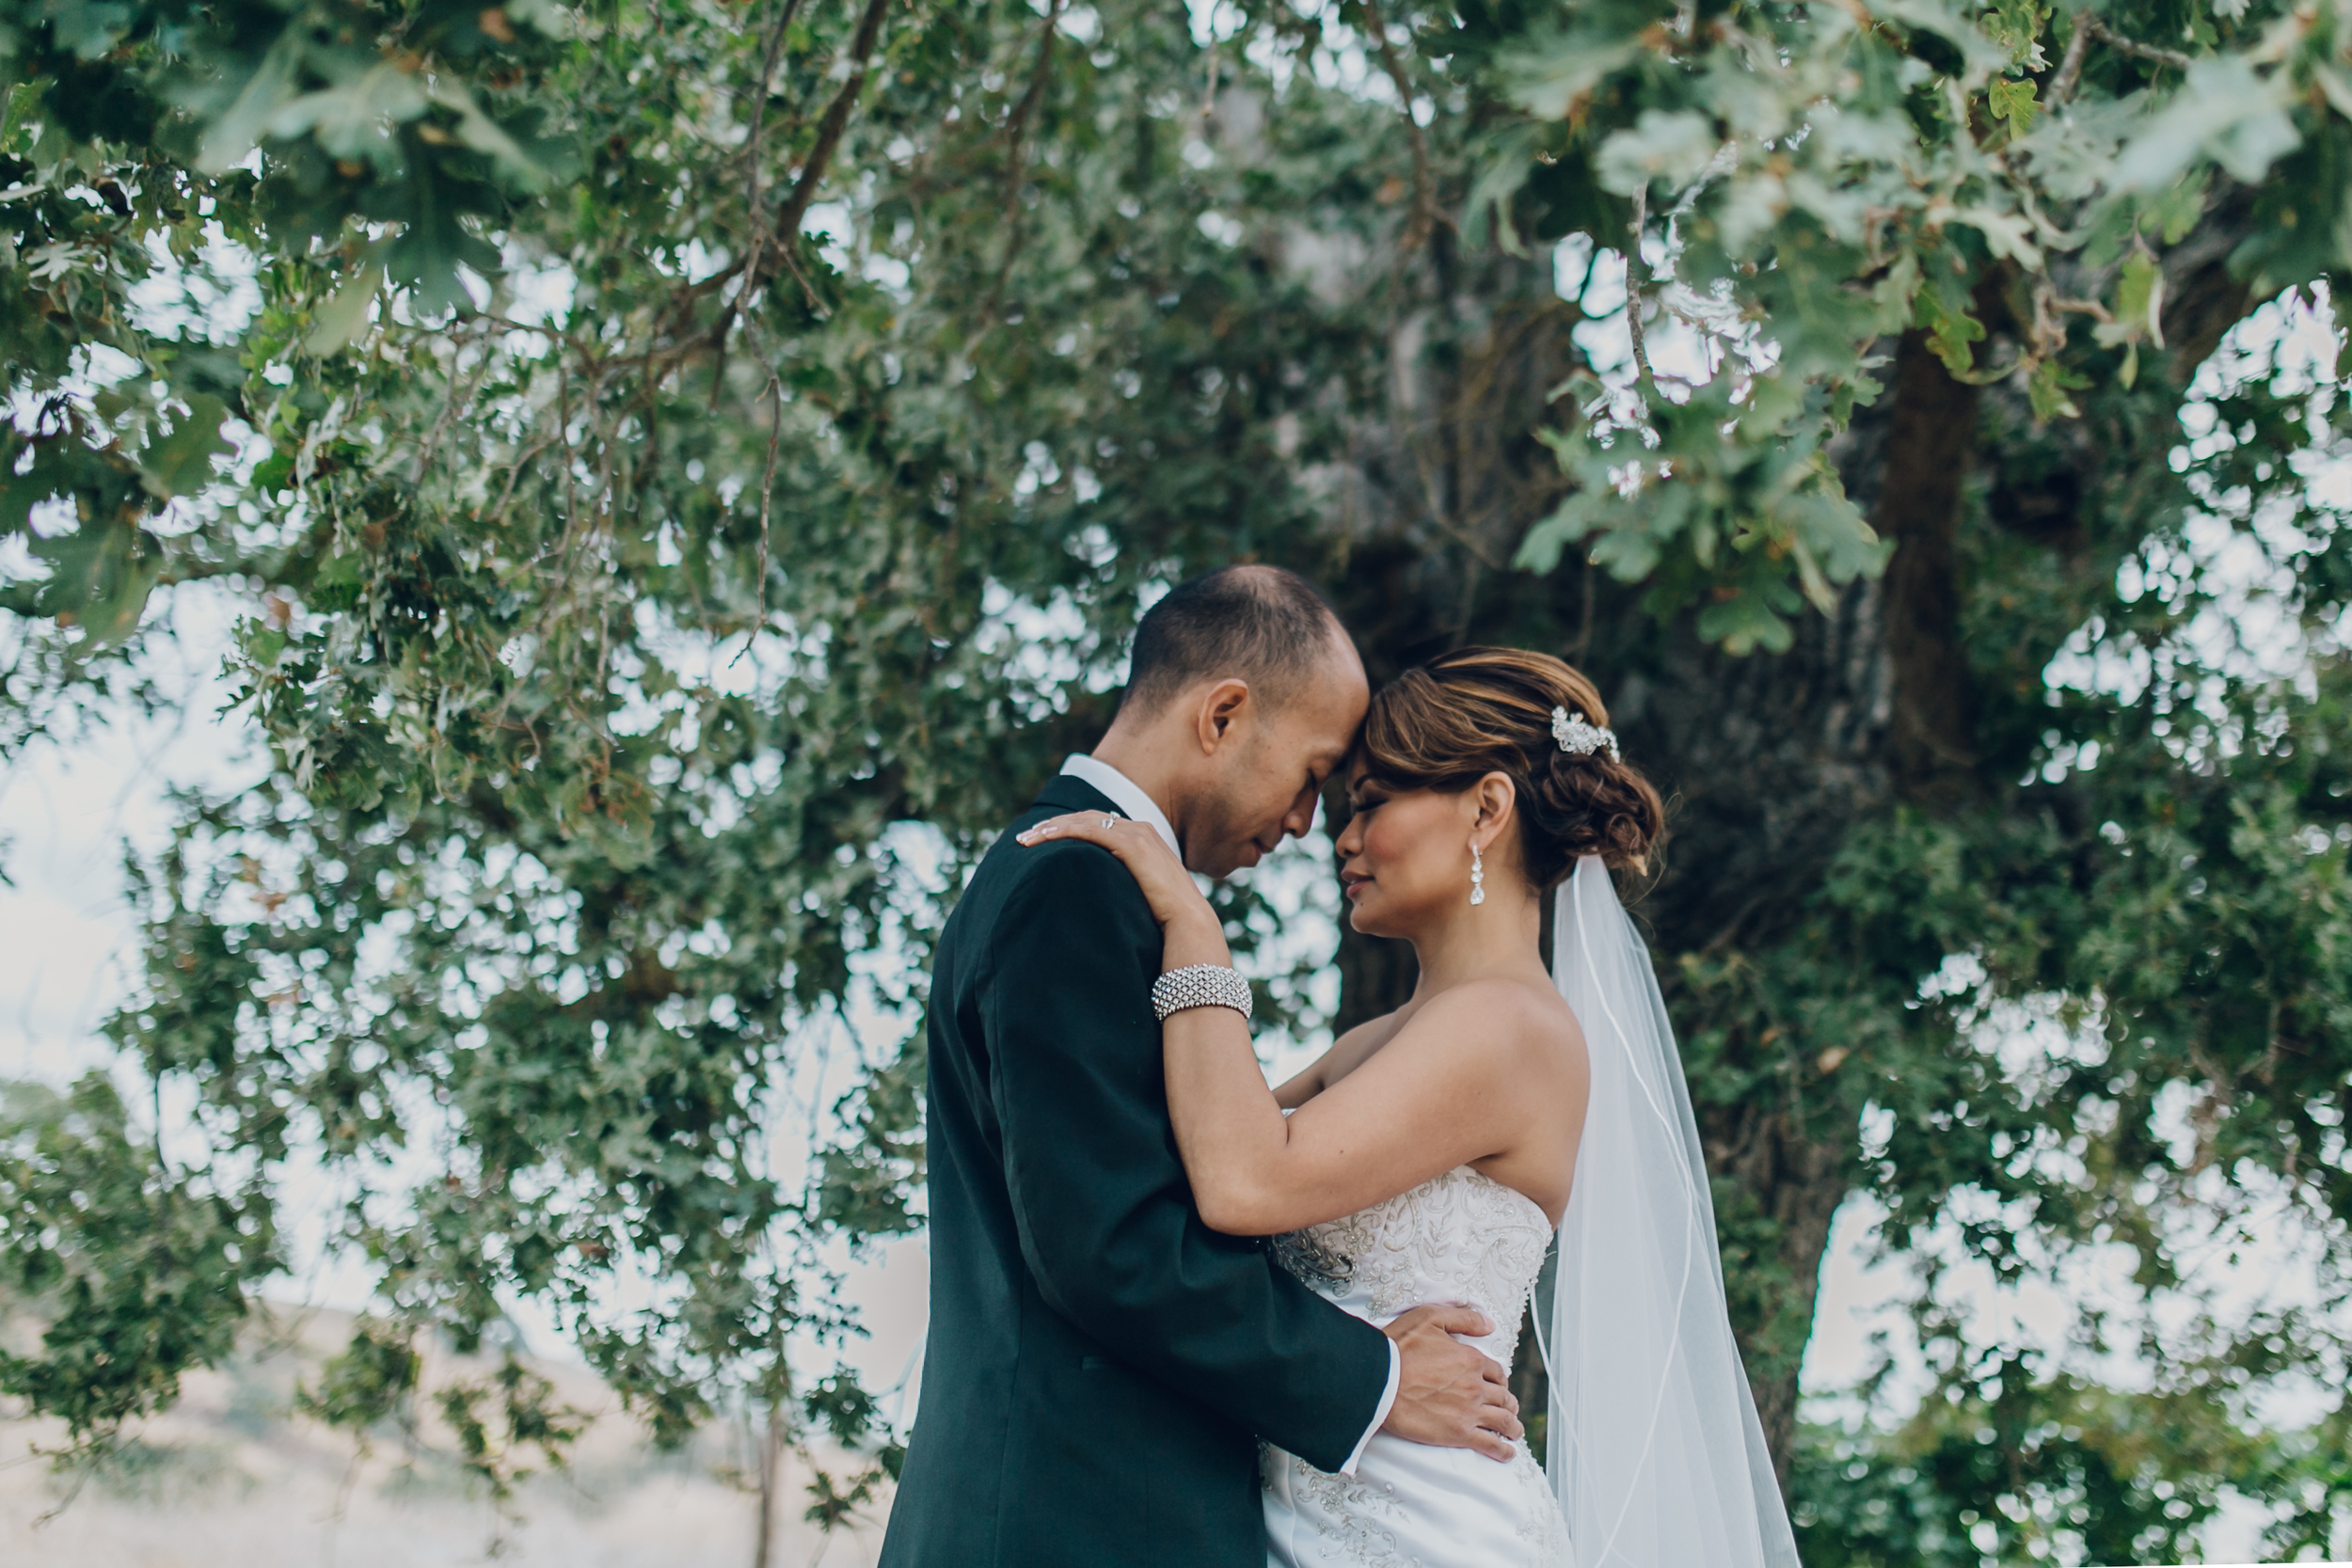 Shiela + Lester's Wedding 9-30-15 913.jpg